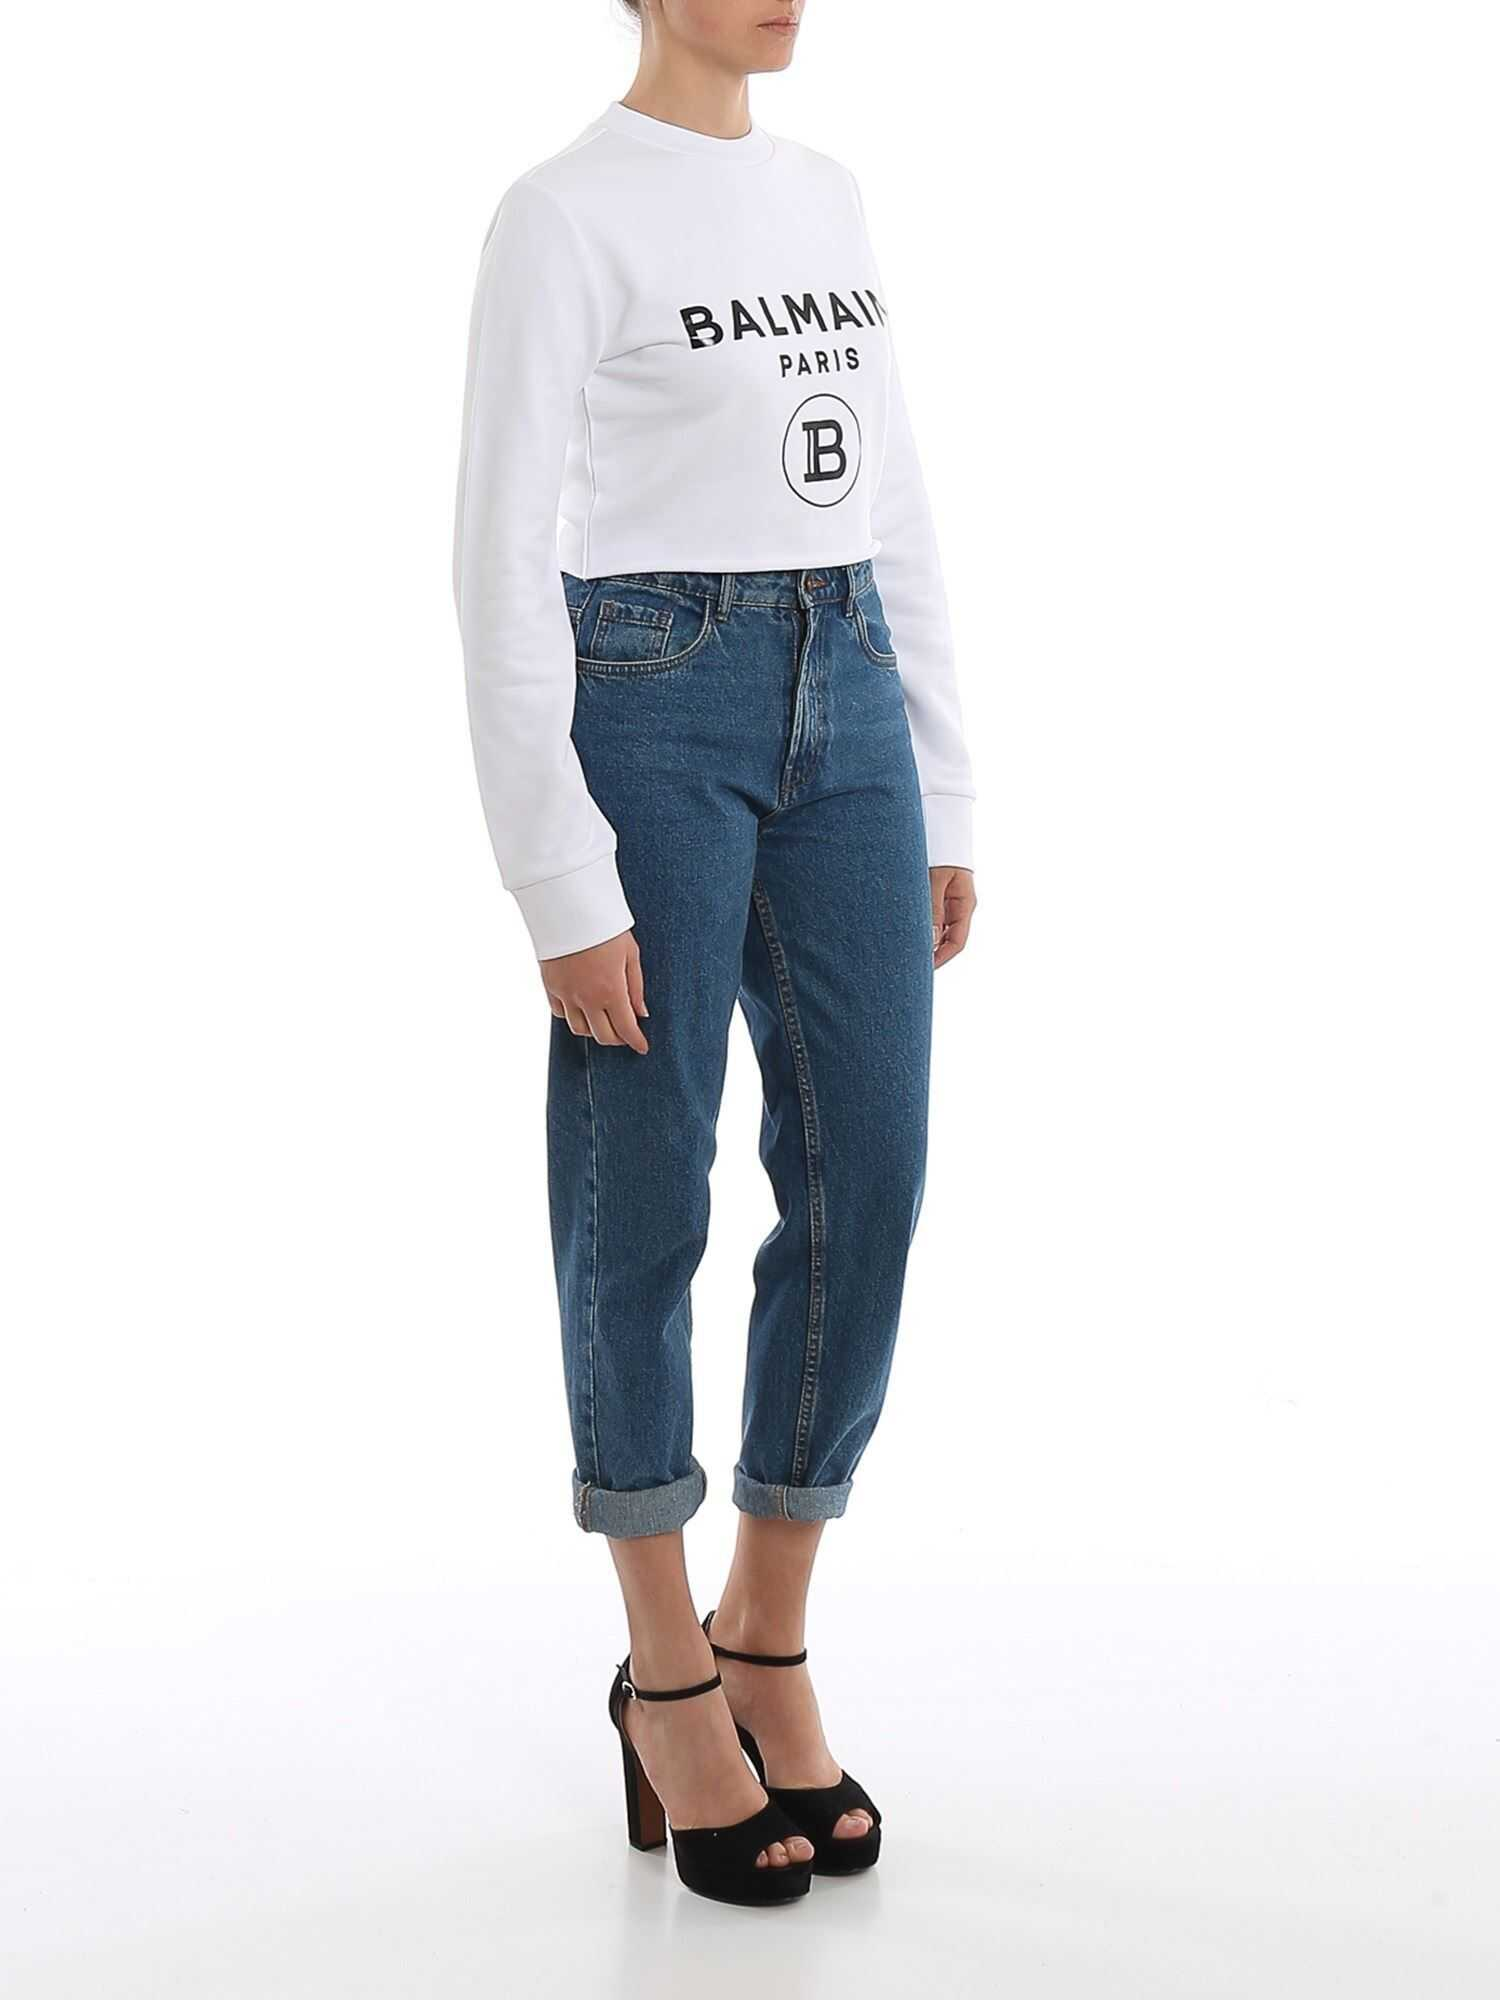 Balmain White Cotton Cropped Sweatshirt White